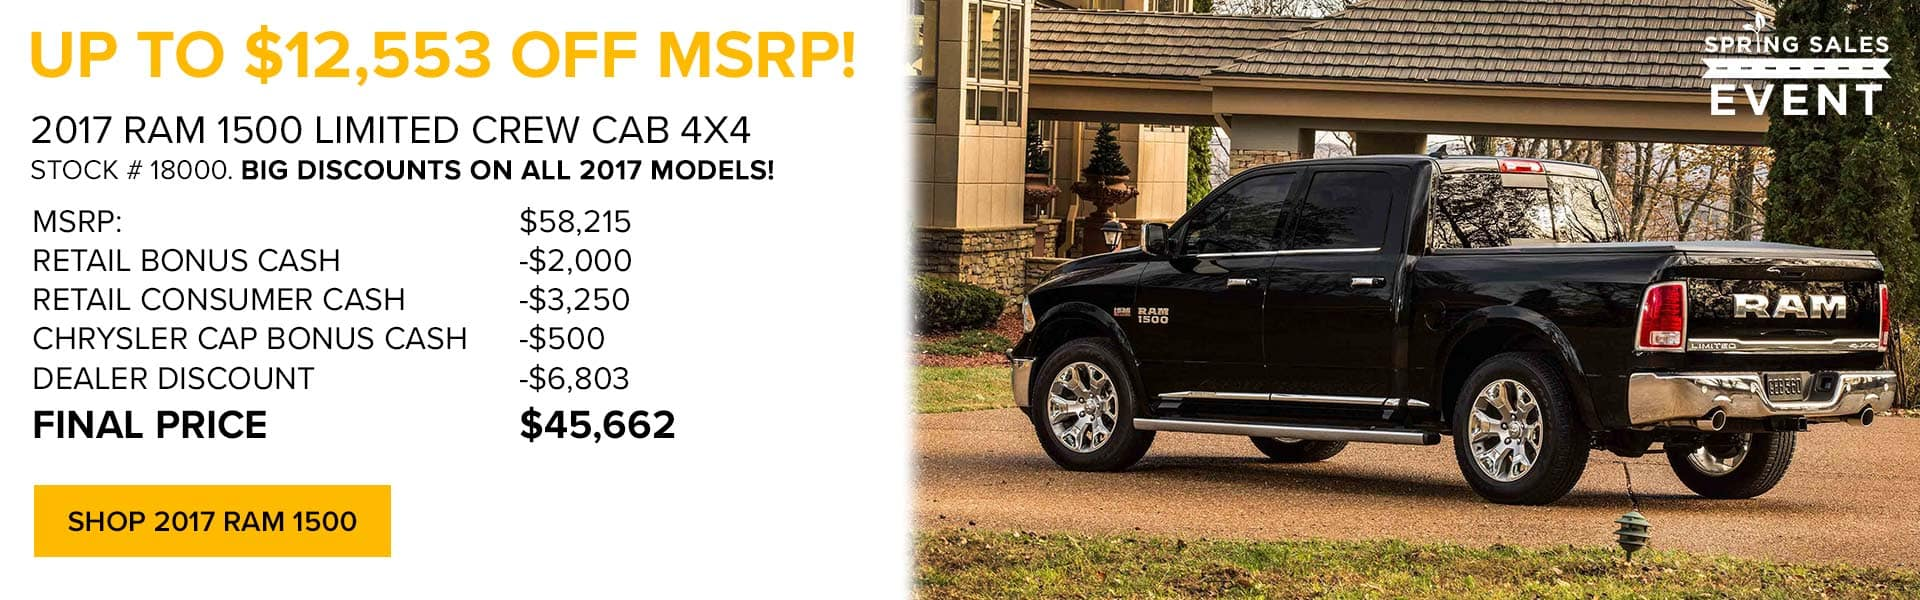 Up to $12,553 off MSRP on 2017 RAM 1500 at Newberg Ram Jeep Dodge